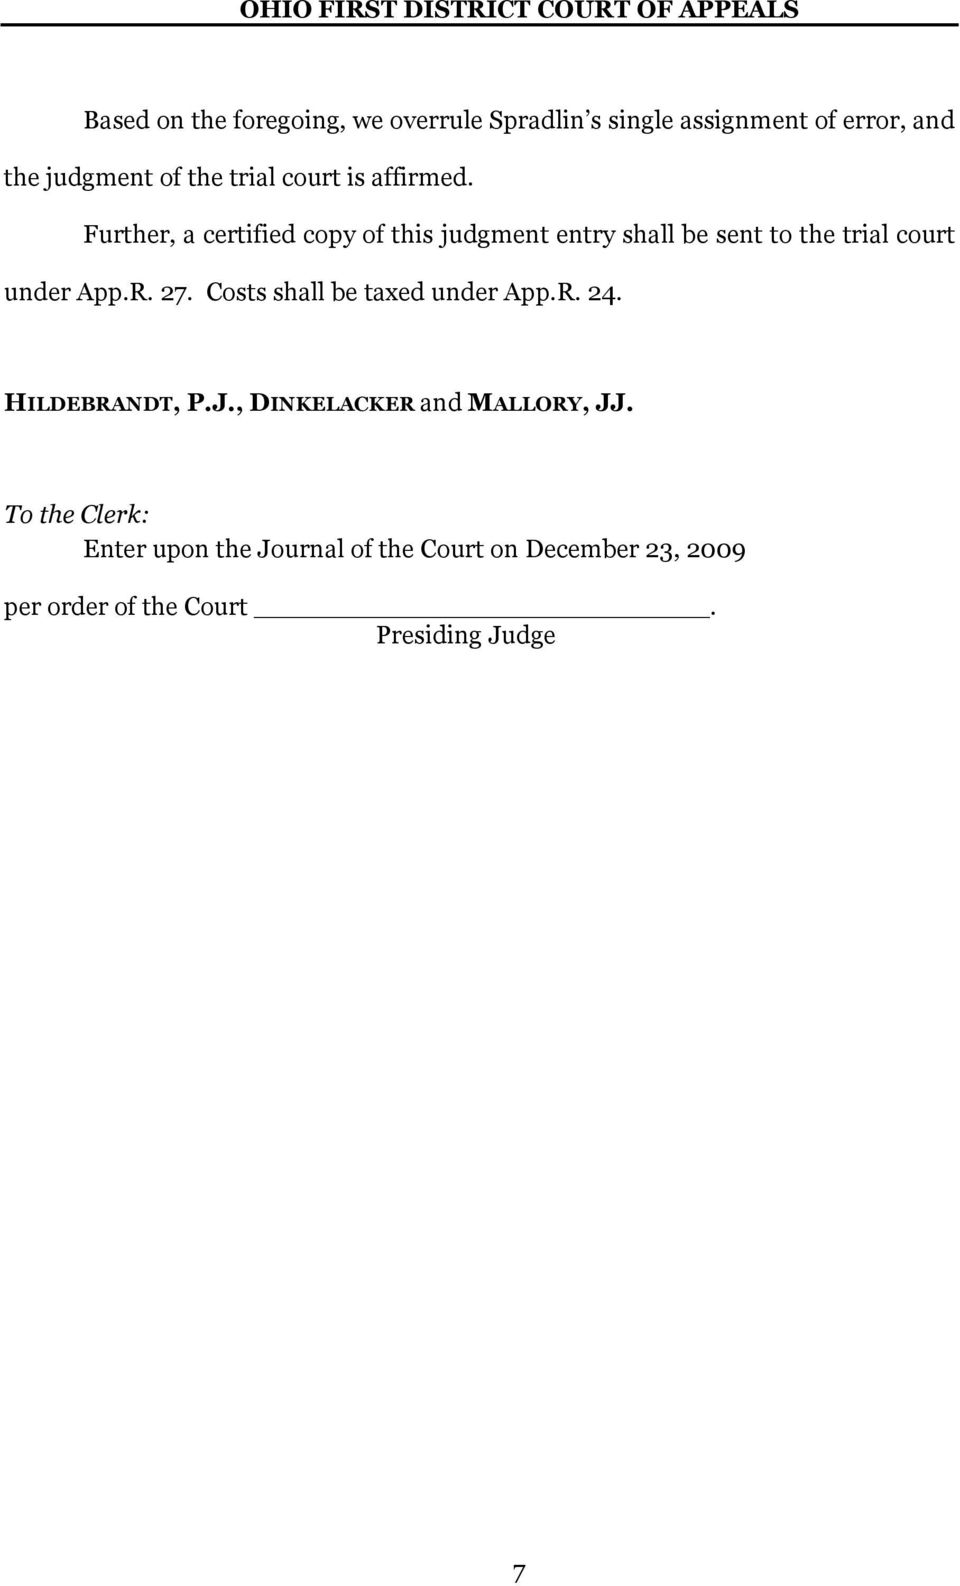 Further, a certified copy of this judgment entry shall be sent to the trial court under App.R. 27.